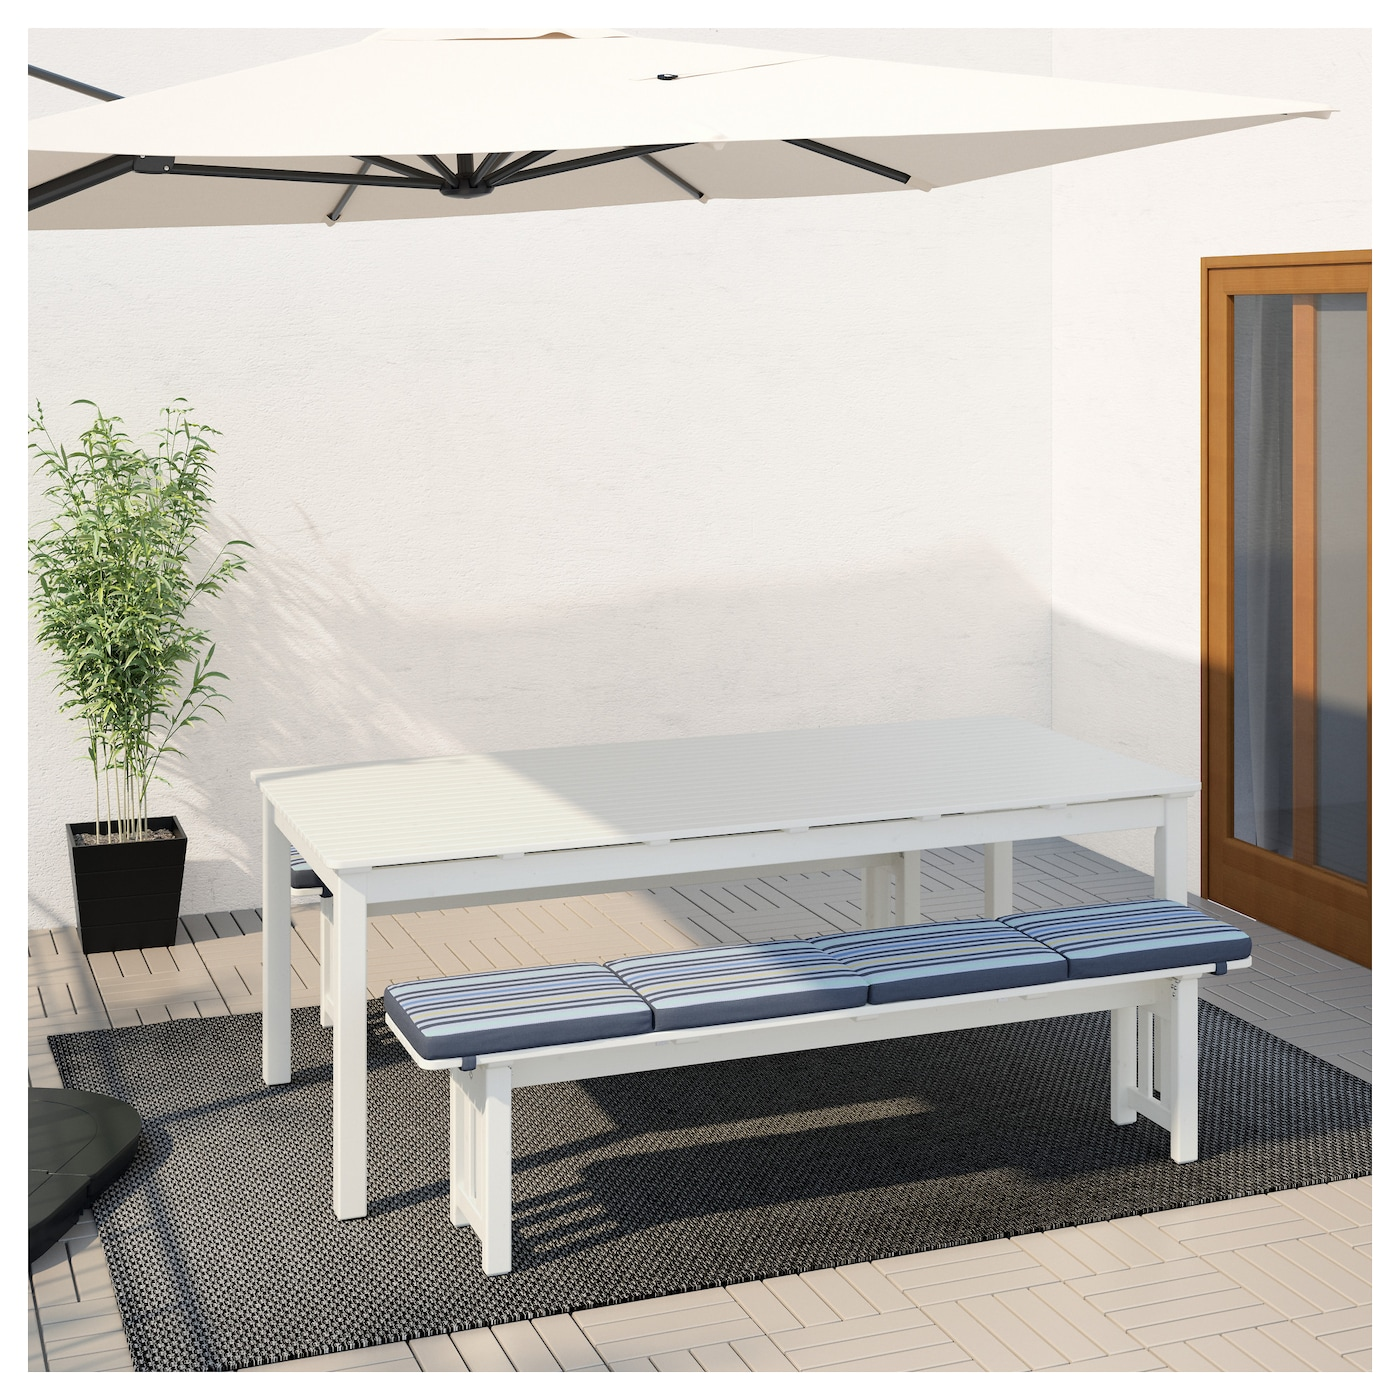 IKEA ÄNGSÖ table+2 benches, outdoor